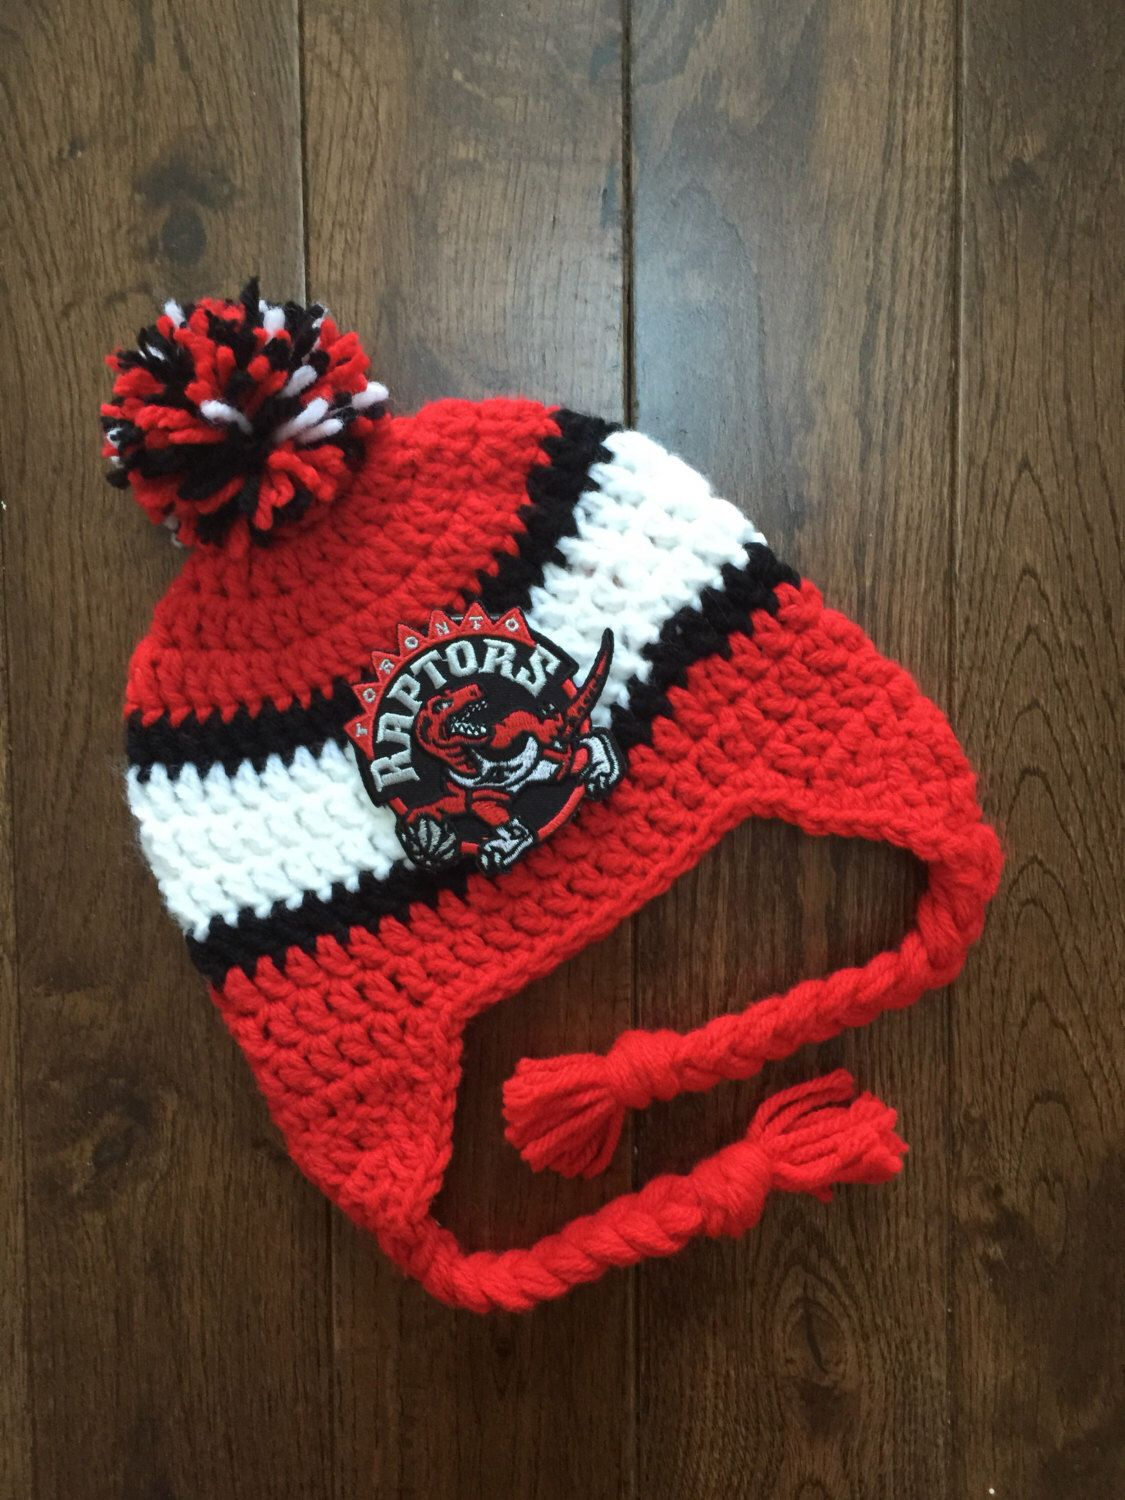 66b1902fae1 Handmade Toronto Raptors Crochet Hat with NBA Patch/ Photo Prop ...